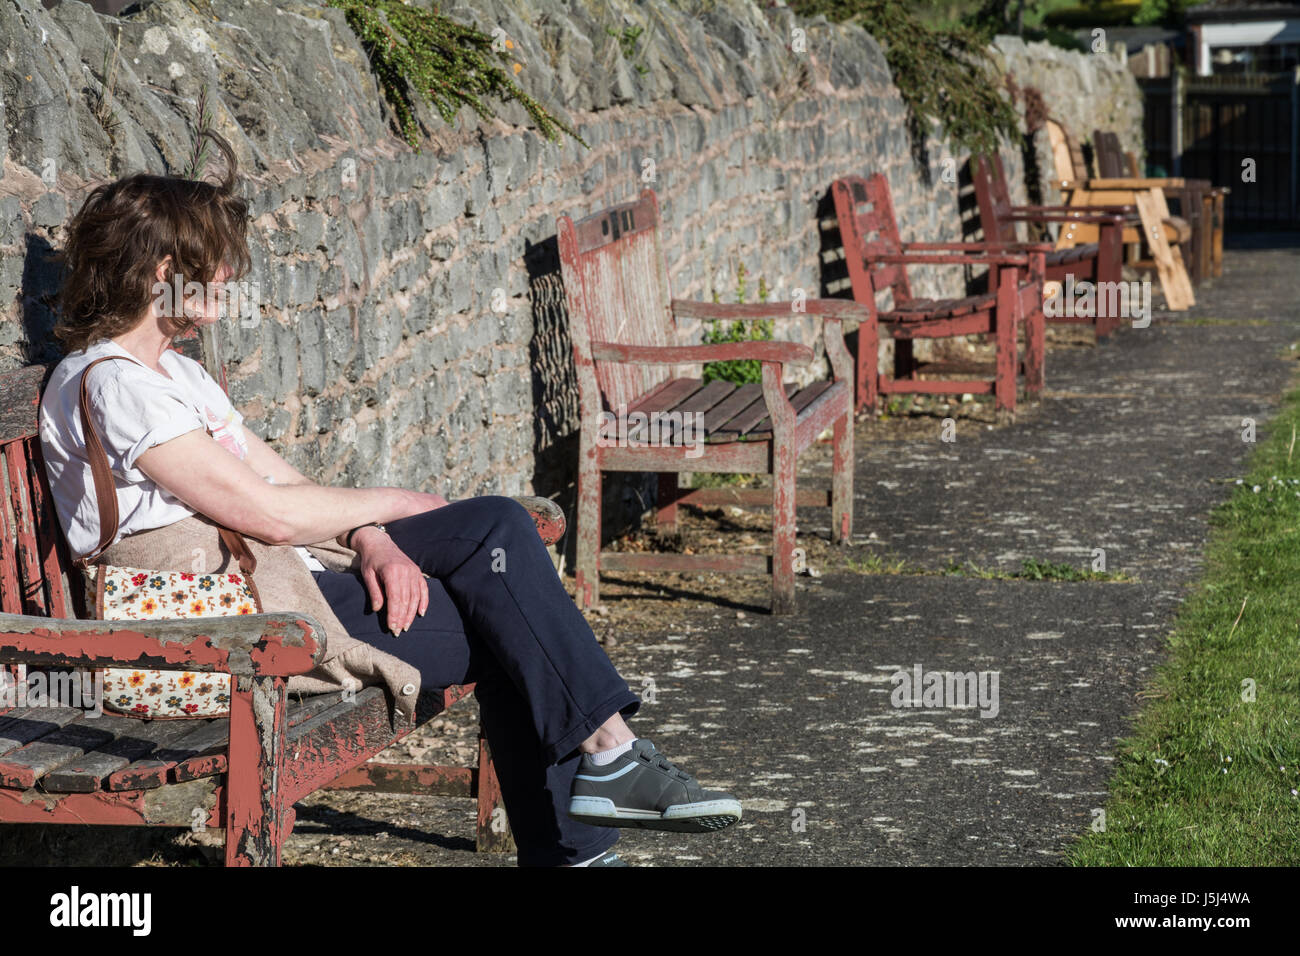 Middle aged woman sitting on a bench relaxing on a breezy, sunny day. Shropshire, UK, Summer. - Stock Image